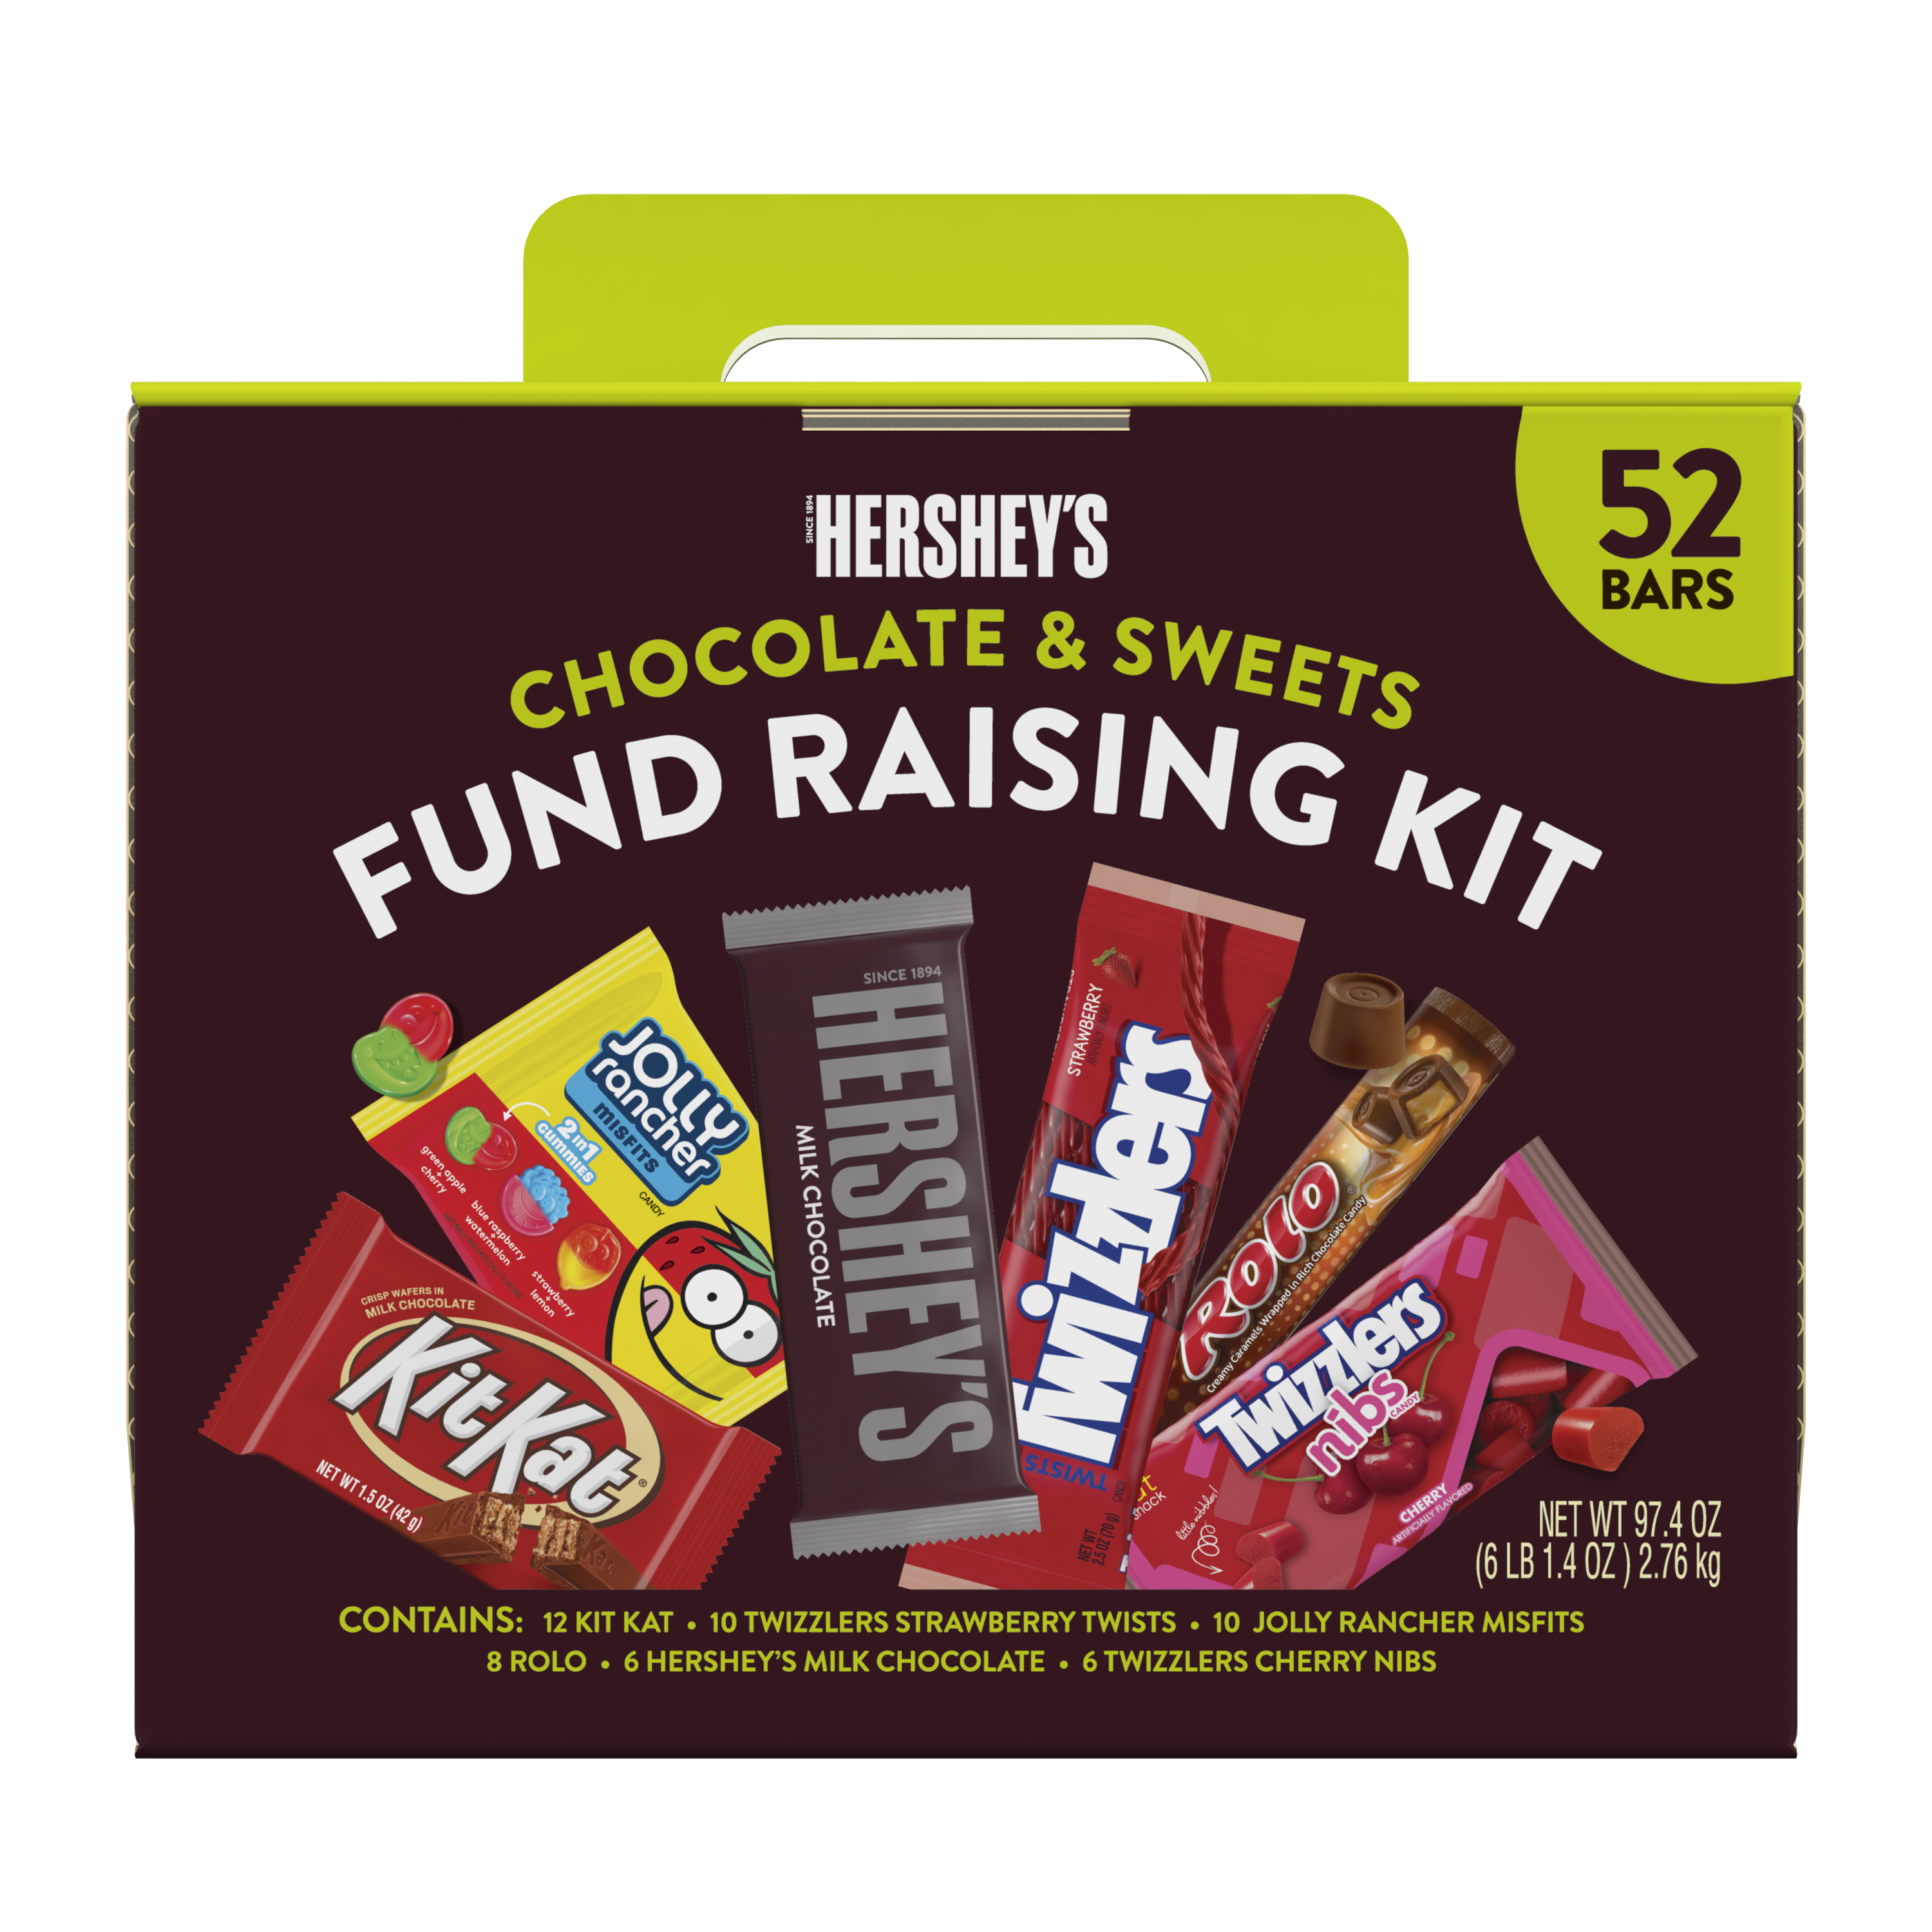 Hershey Chocolate & Sweets Fund Raising Kit, 97.4 oz box, 52 bars - Front of Package